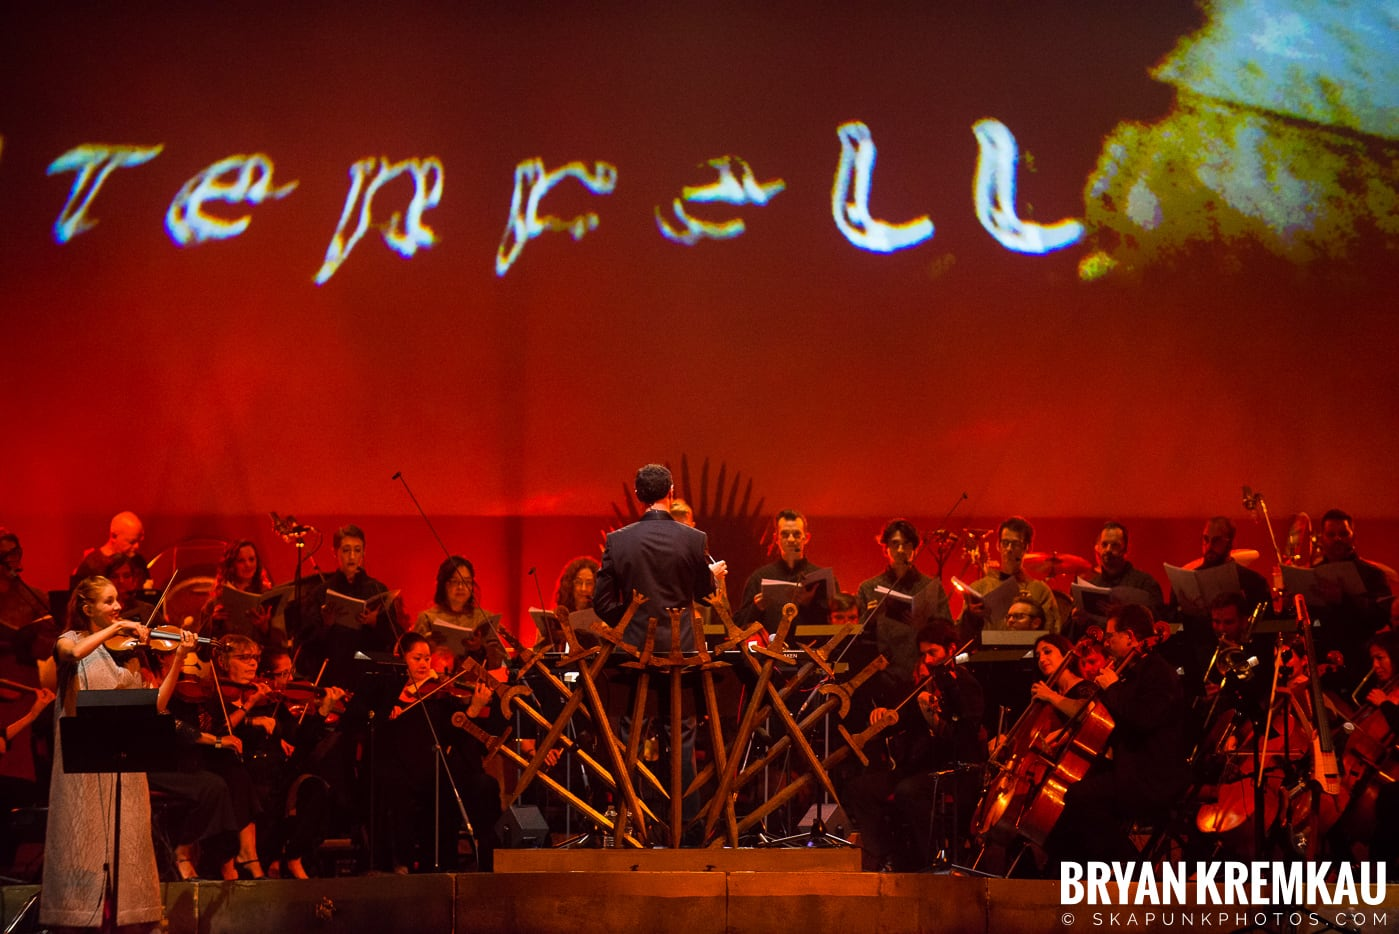 Game of Thrones Live Experience @ Prudential Center, Newark, NJ - 9.26.18 (40)